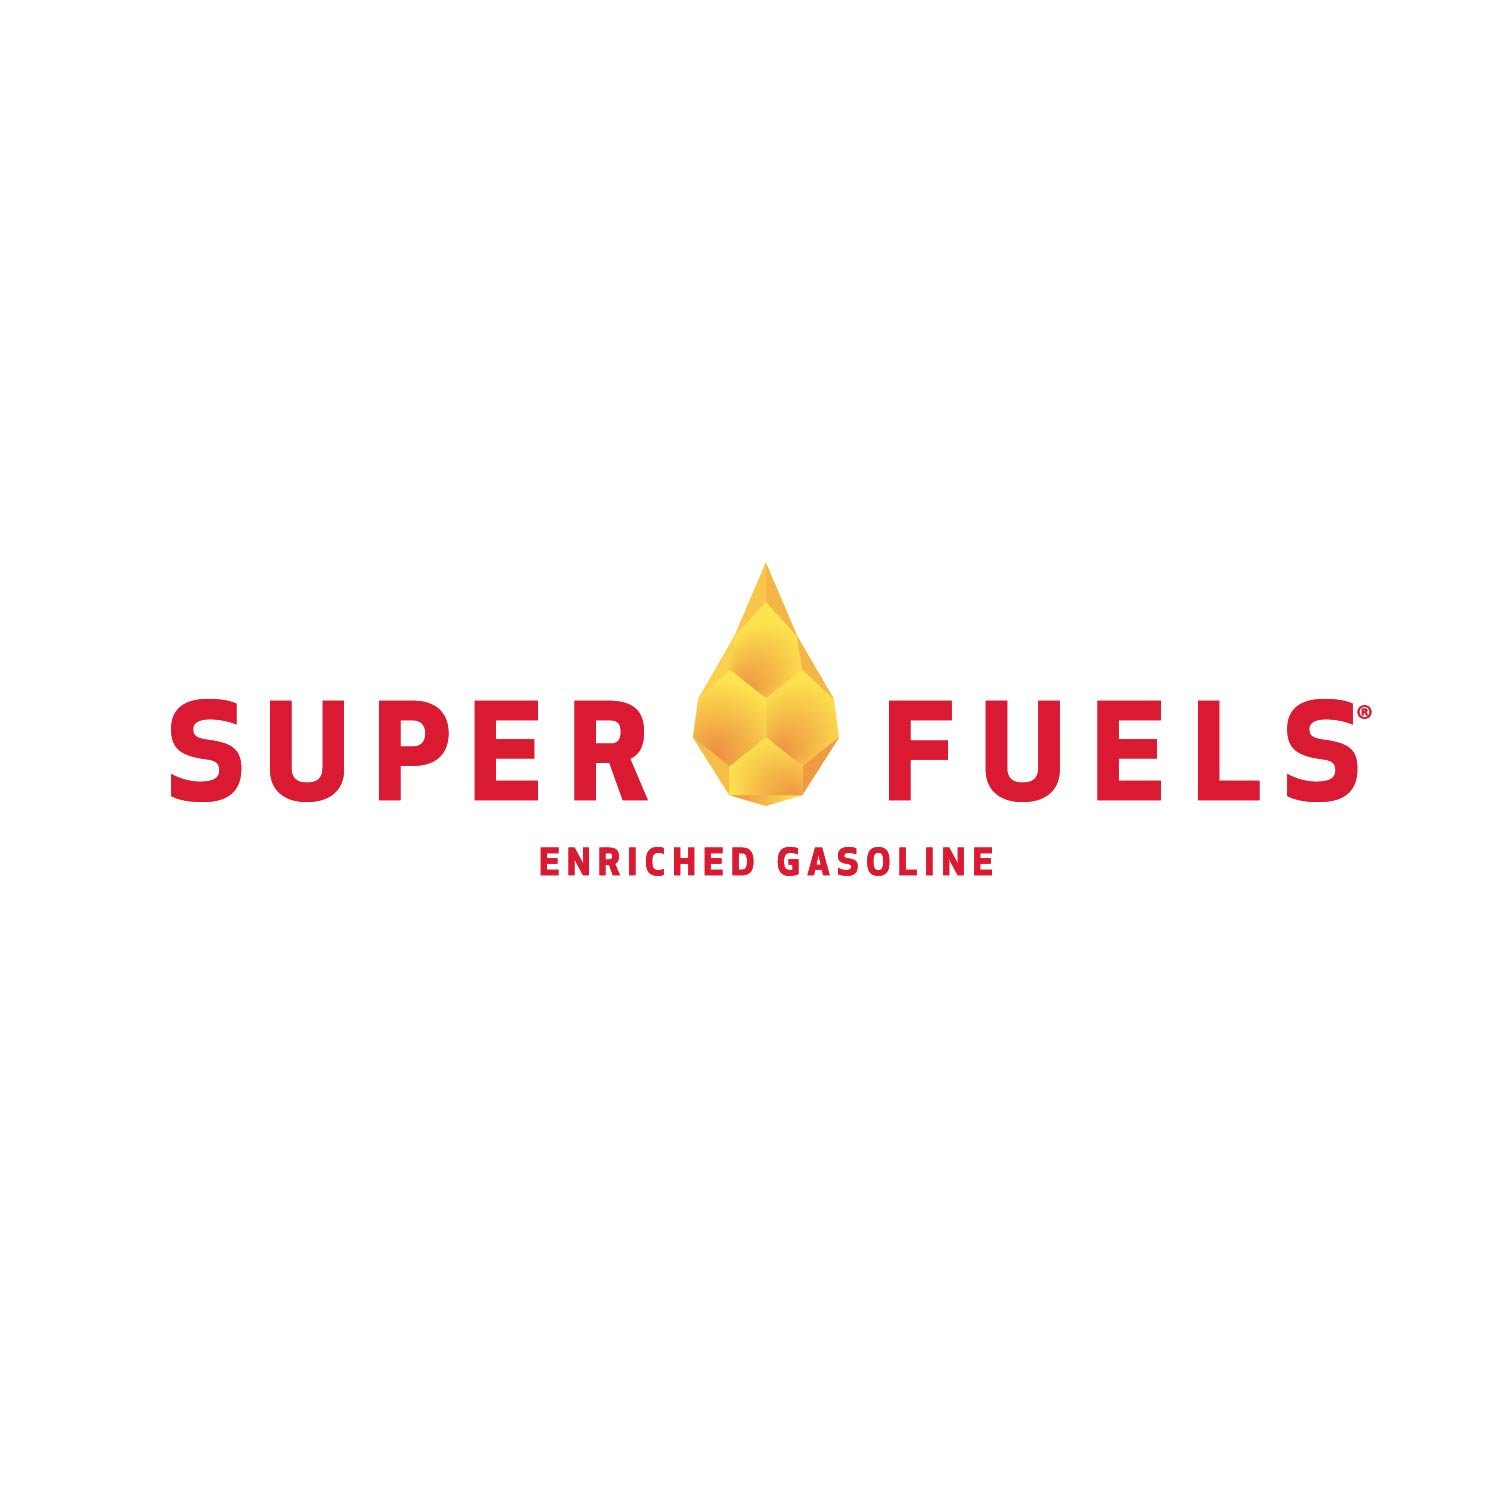 Superfuels_SA_2